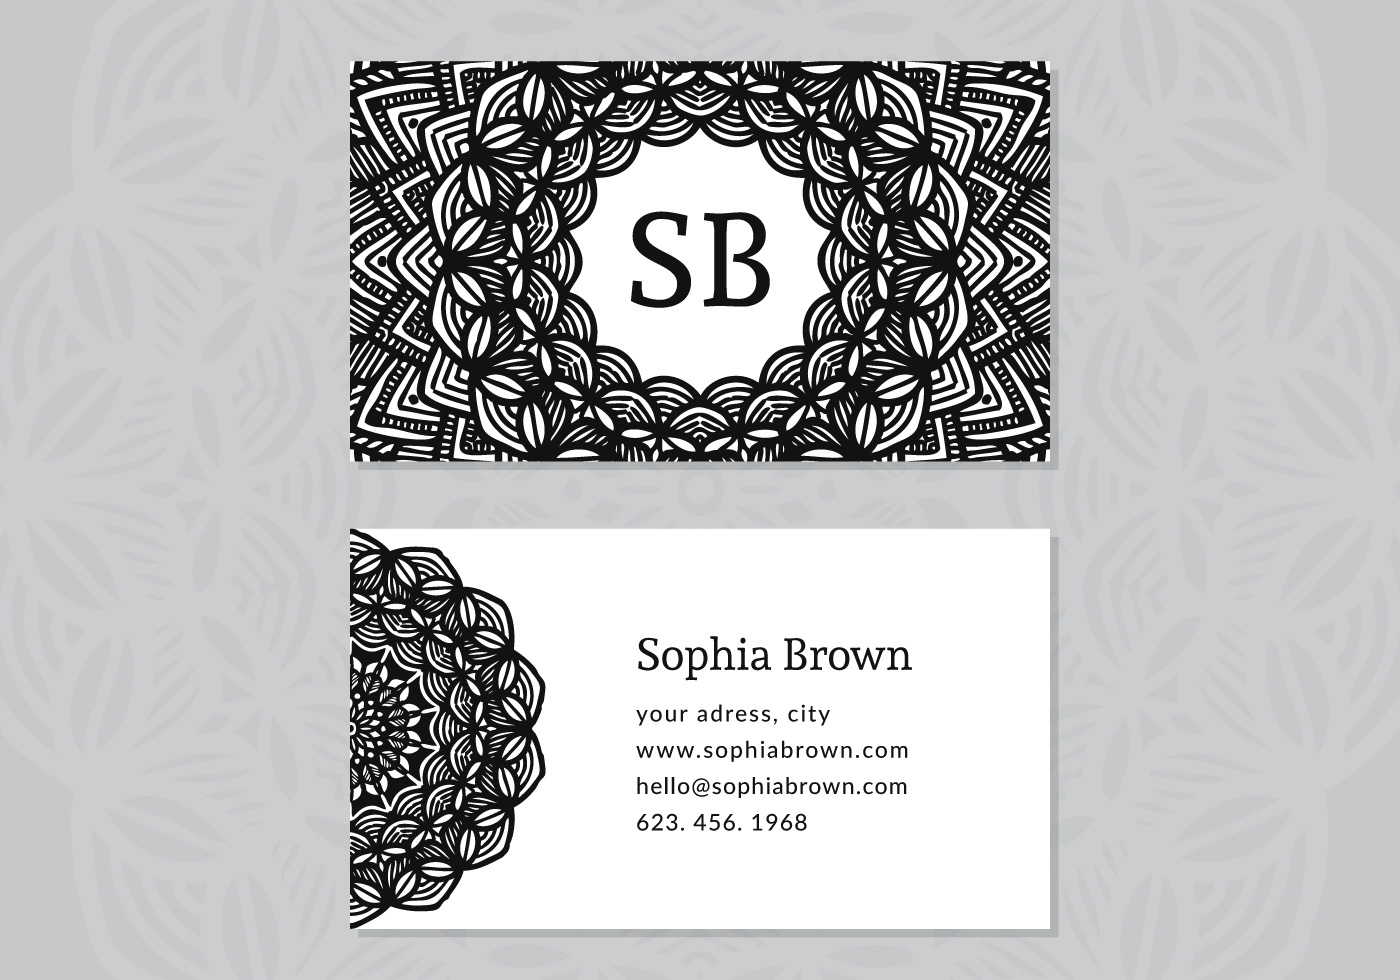 Drawn card graphic Business Business decoration Vector set